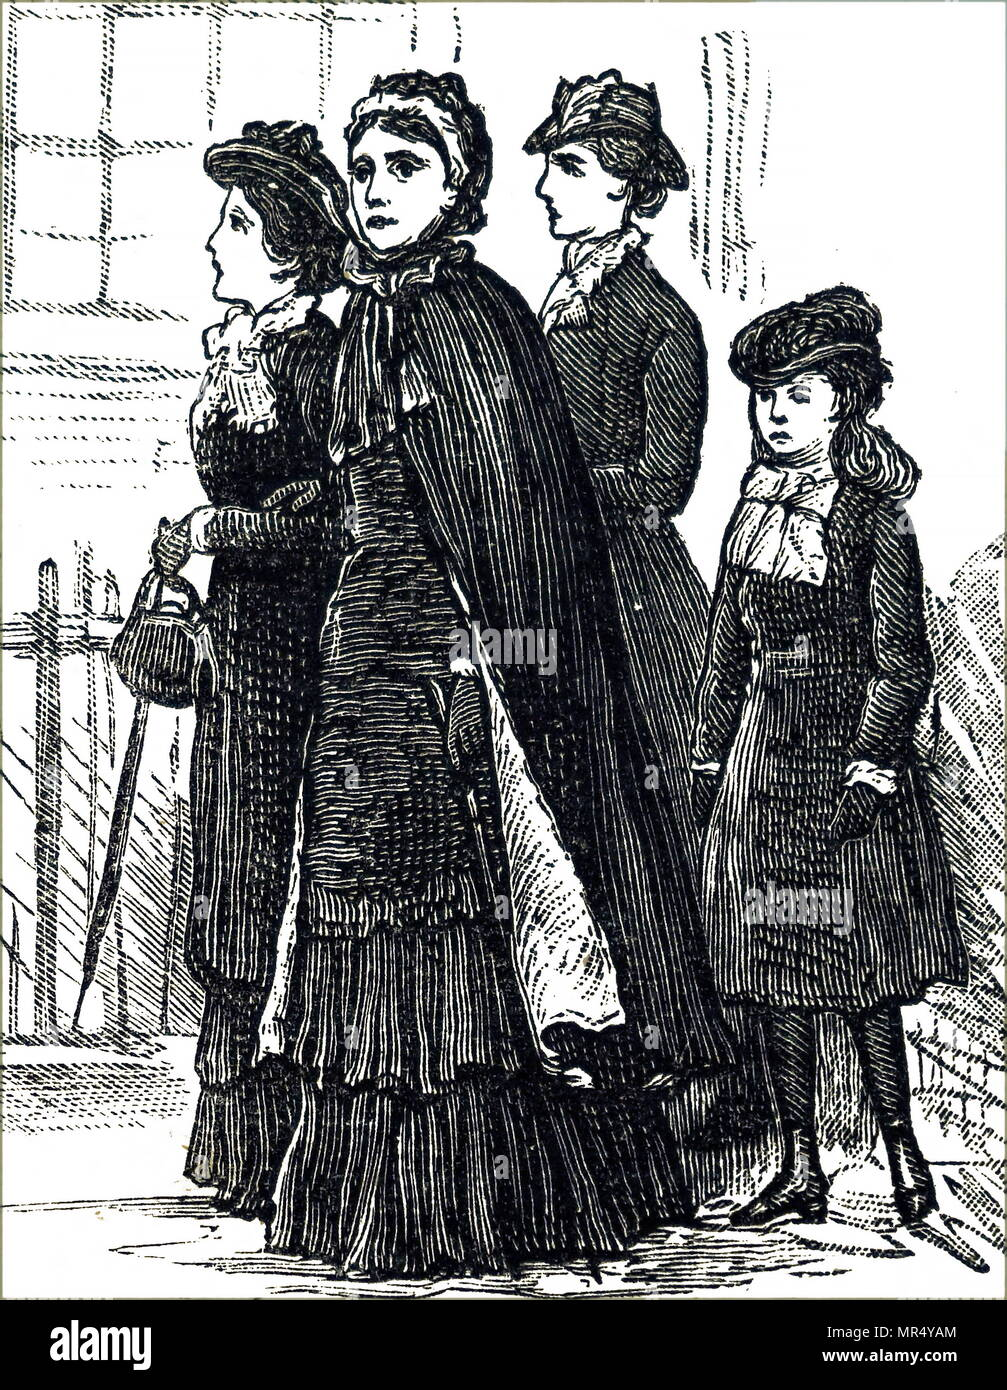 Illustration depicting working-class women looking for holiday lodgings in a seaside town. Dated 19th century - Stock Image